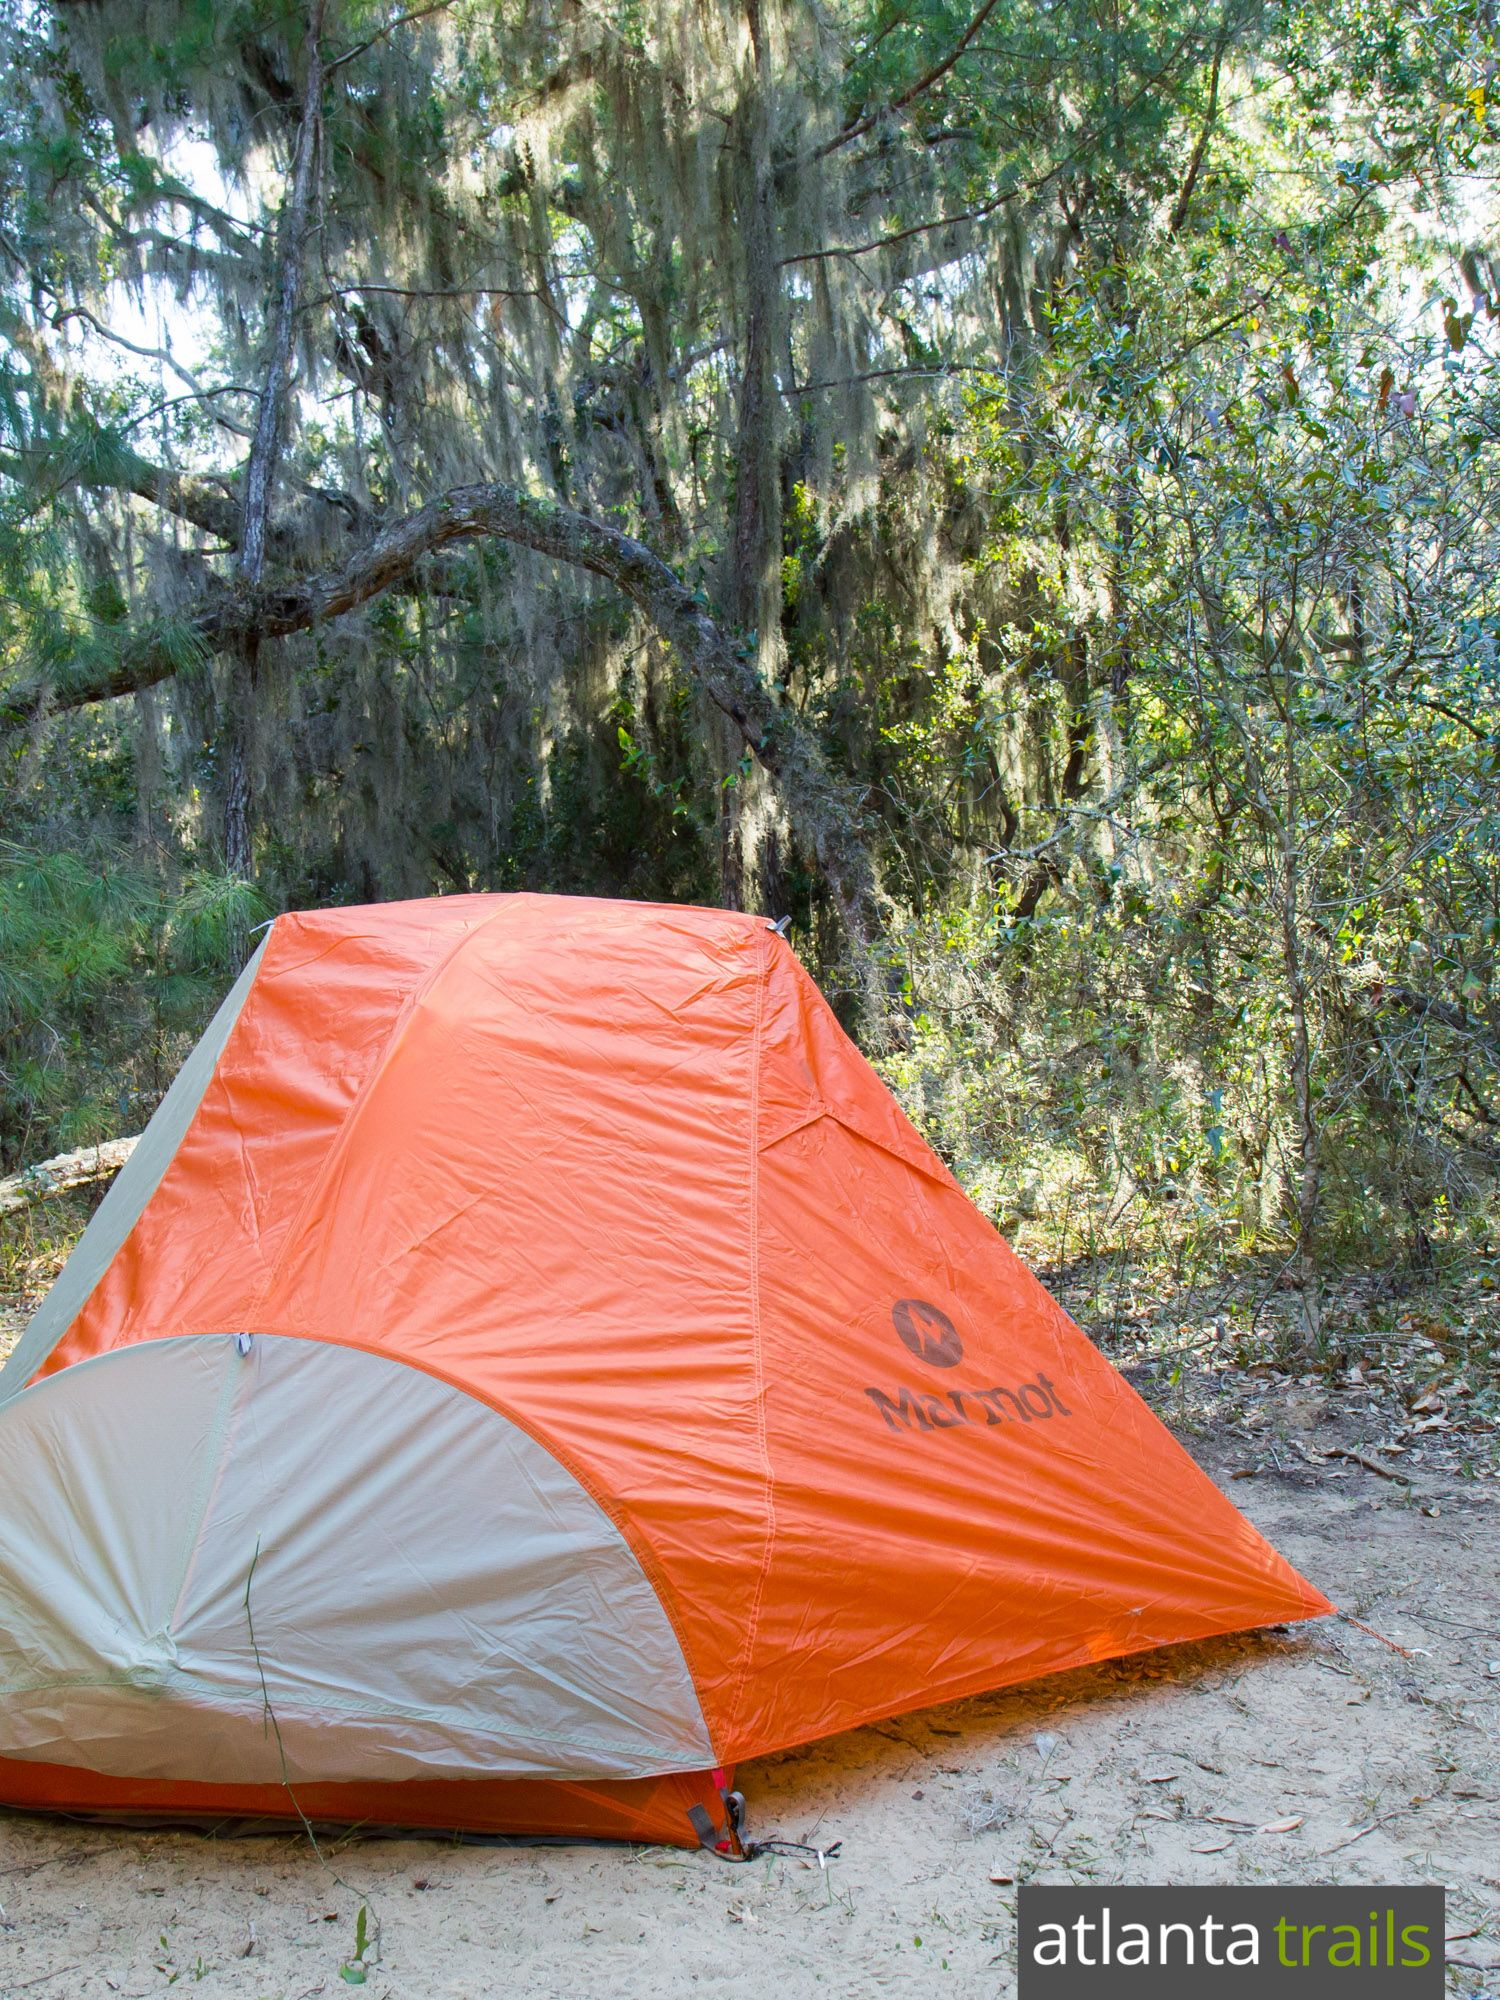 Backpacking or camp on the remote, beautiful Cumberland Island on Georgia's southern coast